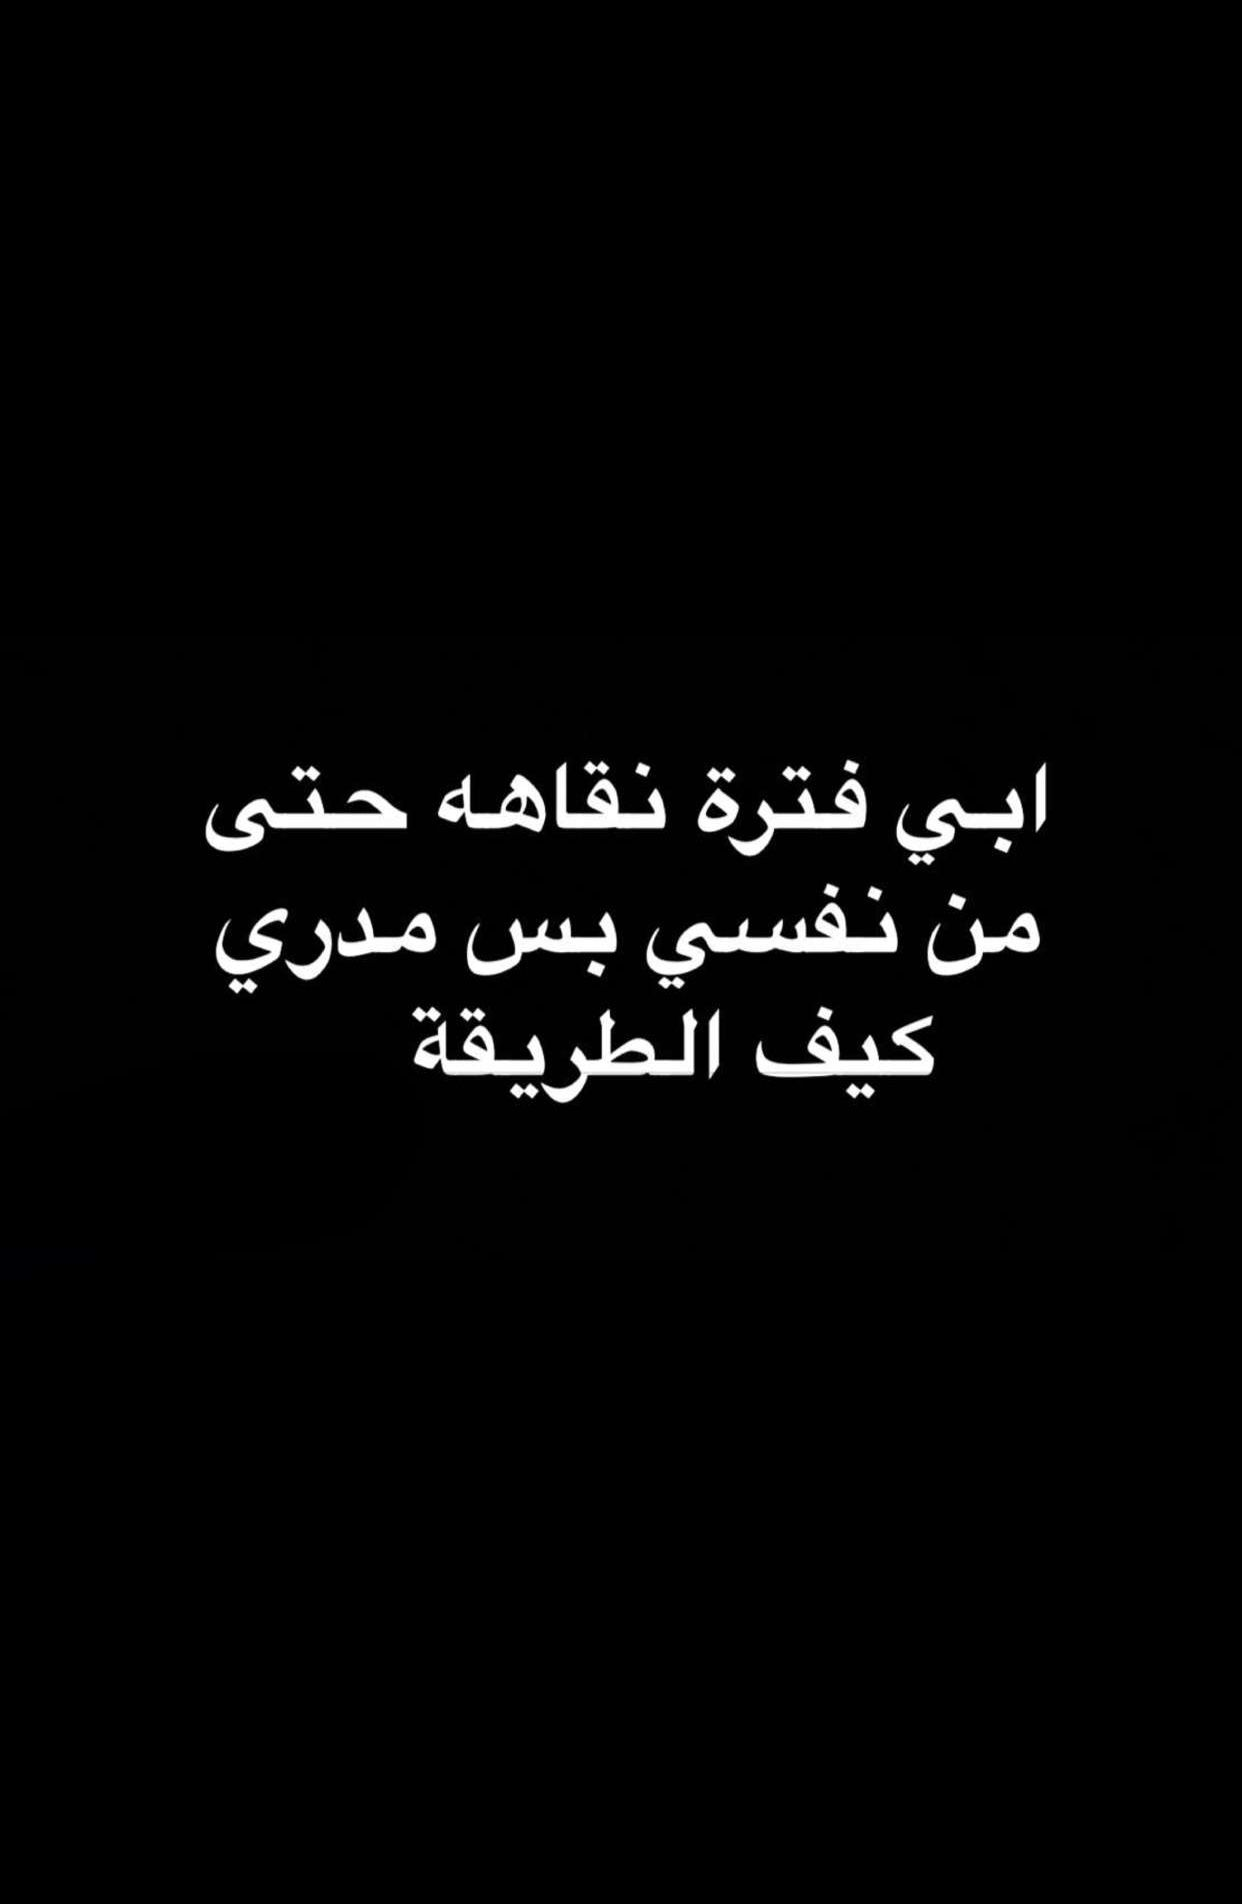 Pin By Lein On Quotation Funny Arabic Quotes Funny Quotes Snapchat Quotes